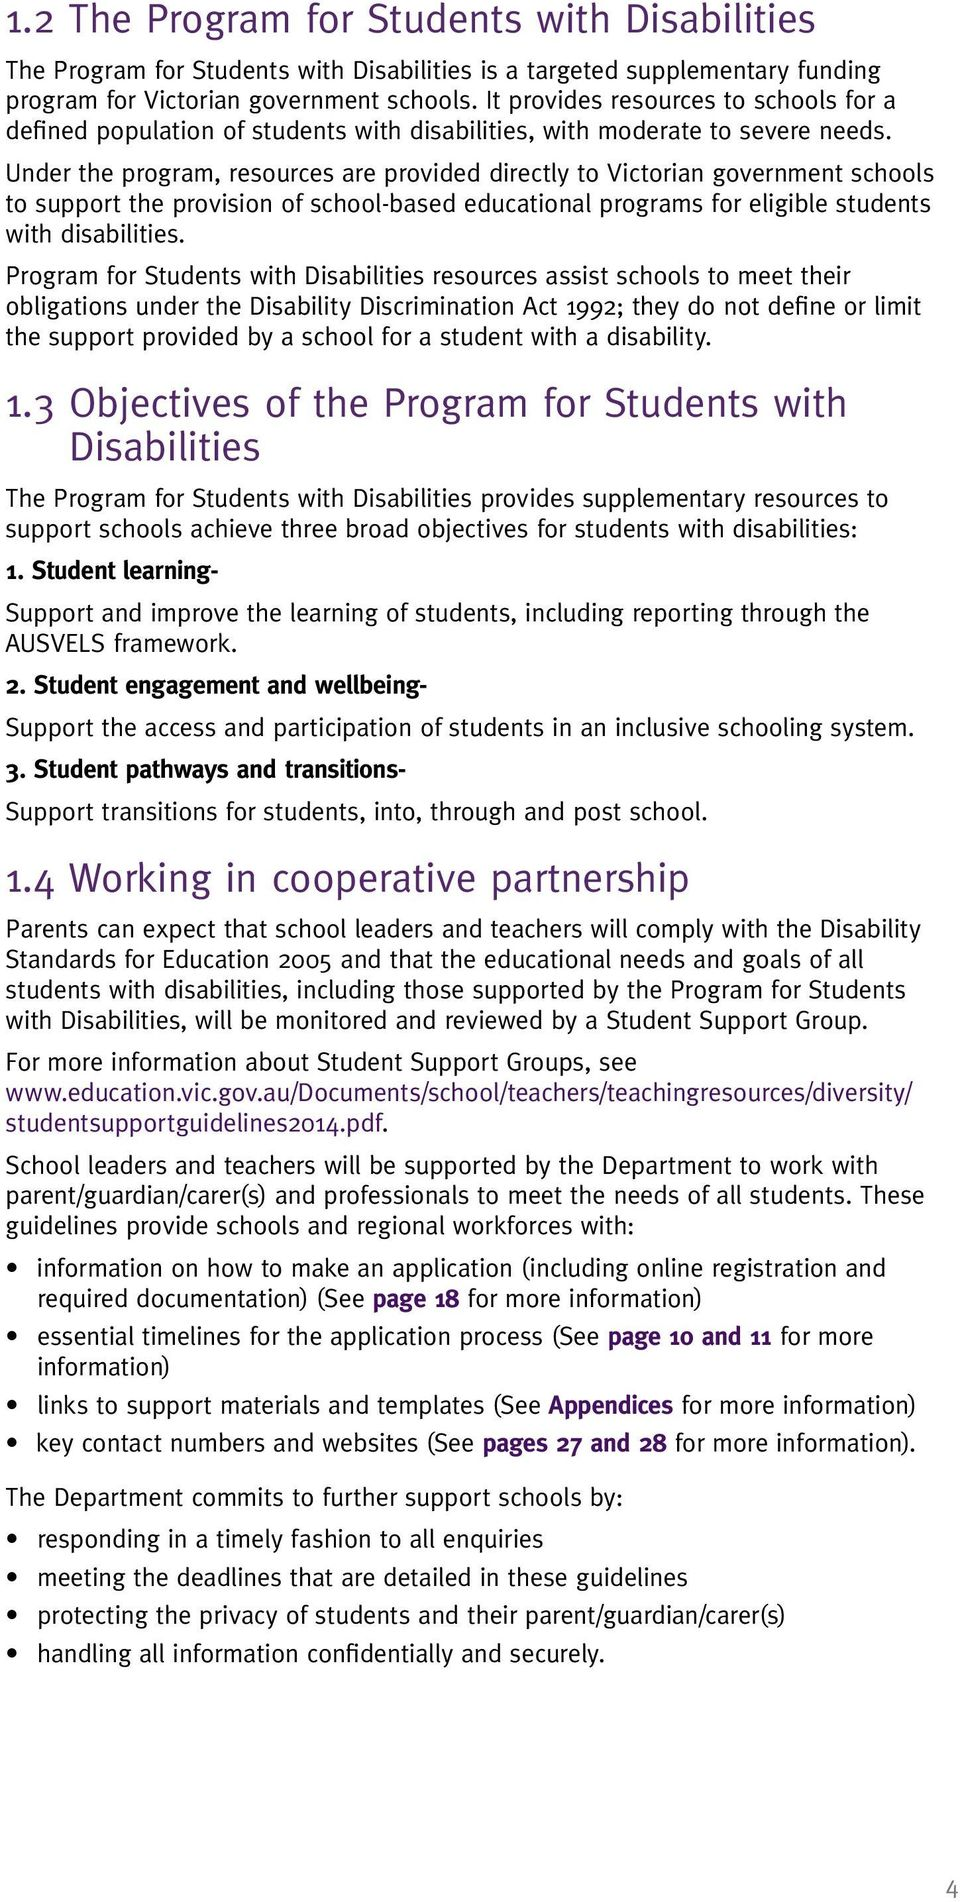 Under the program, resources are provided directly to Victorian government schools to support the provision of school-based educational programs for eligible students with disabilities.